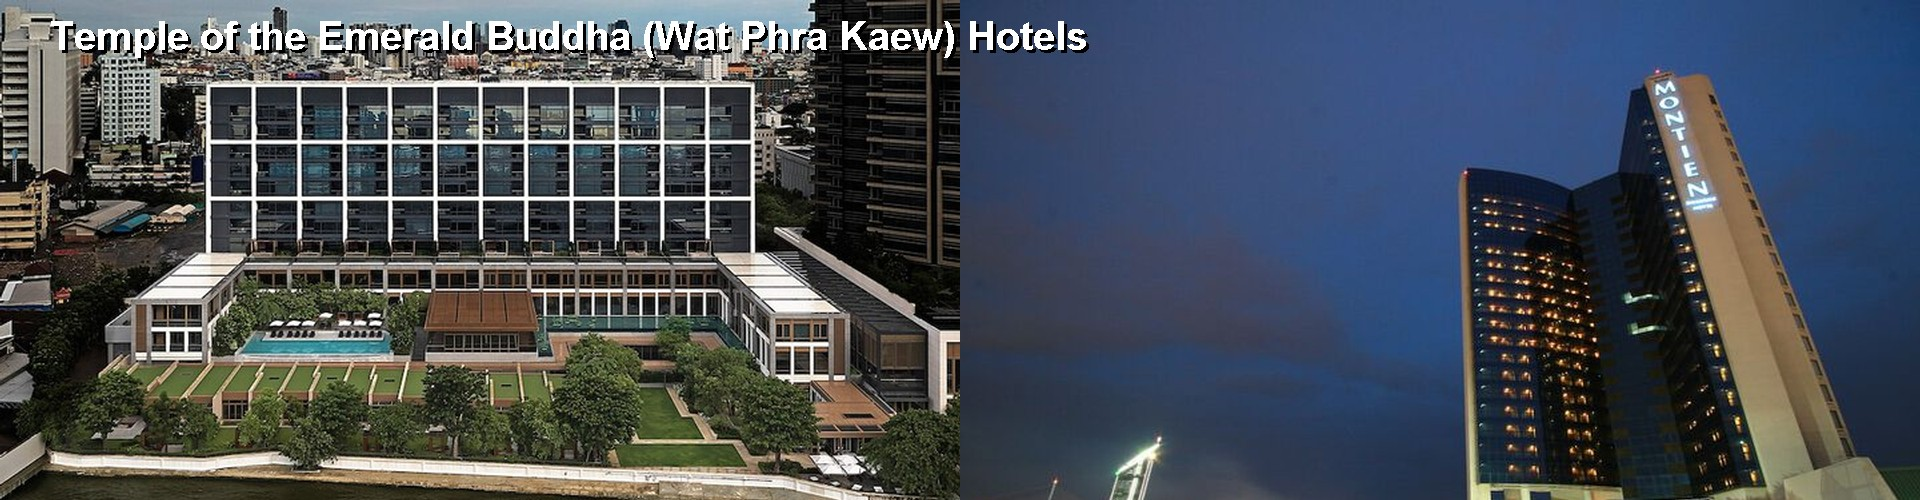 5 Best Hotels near Temple of the Emerald Buddha (Wat Phra Kaew)